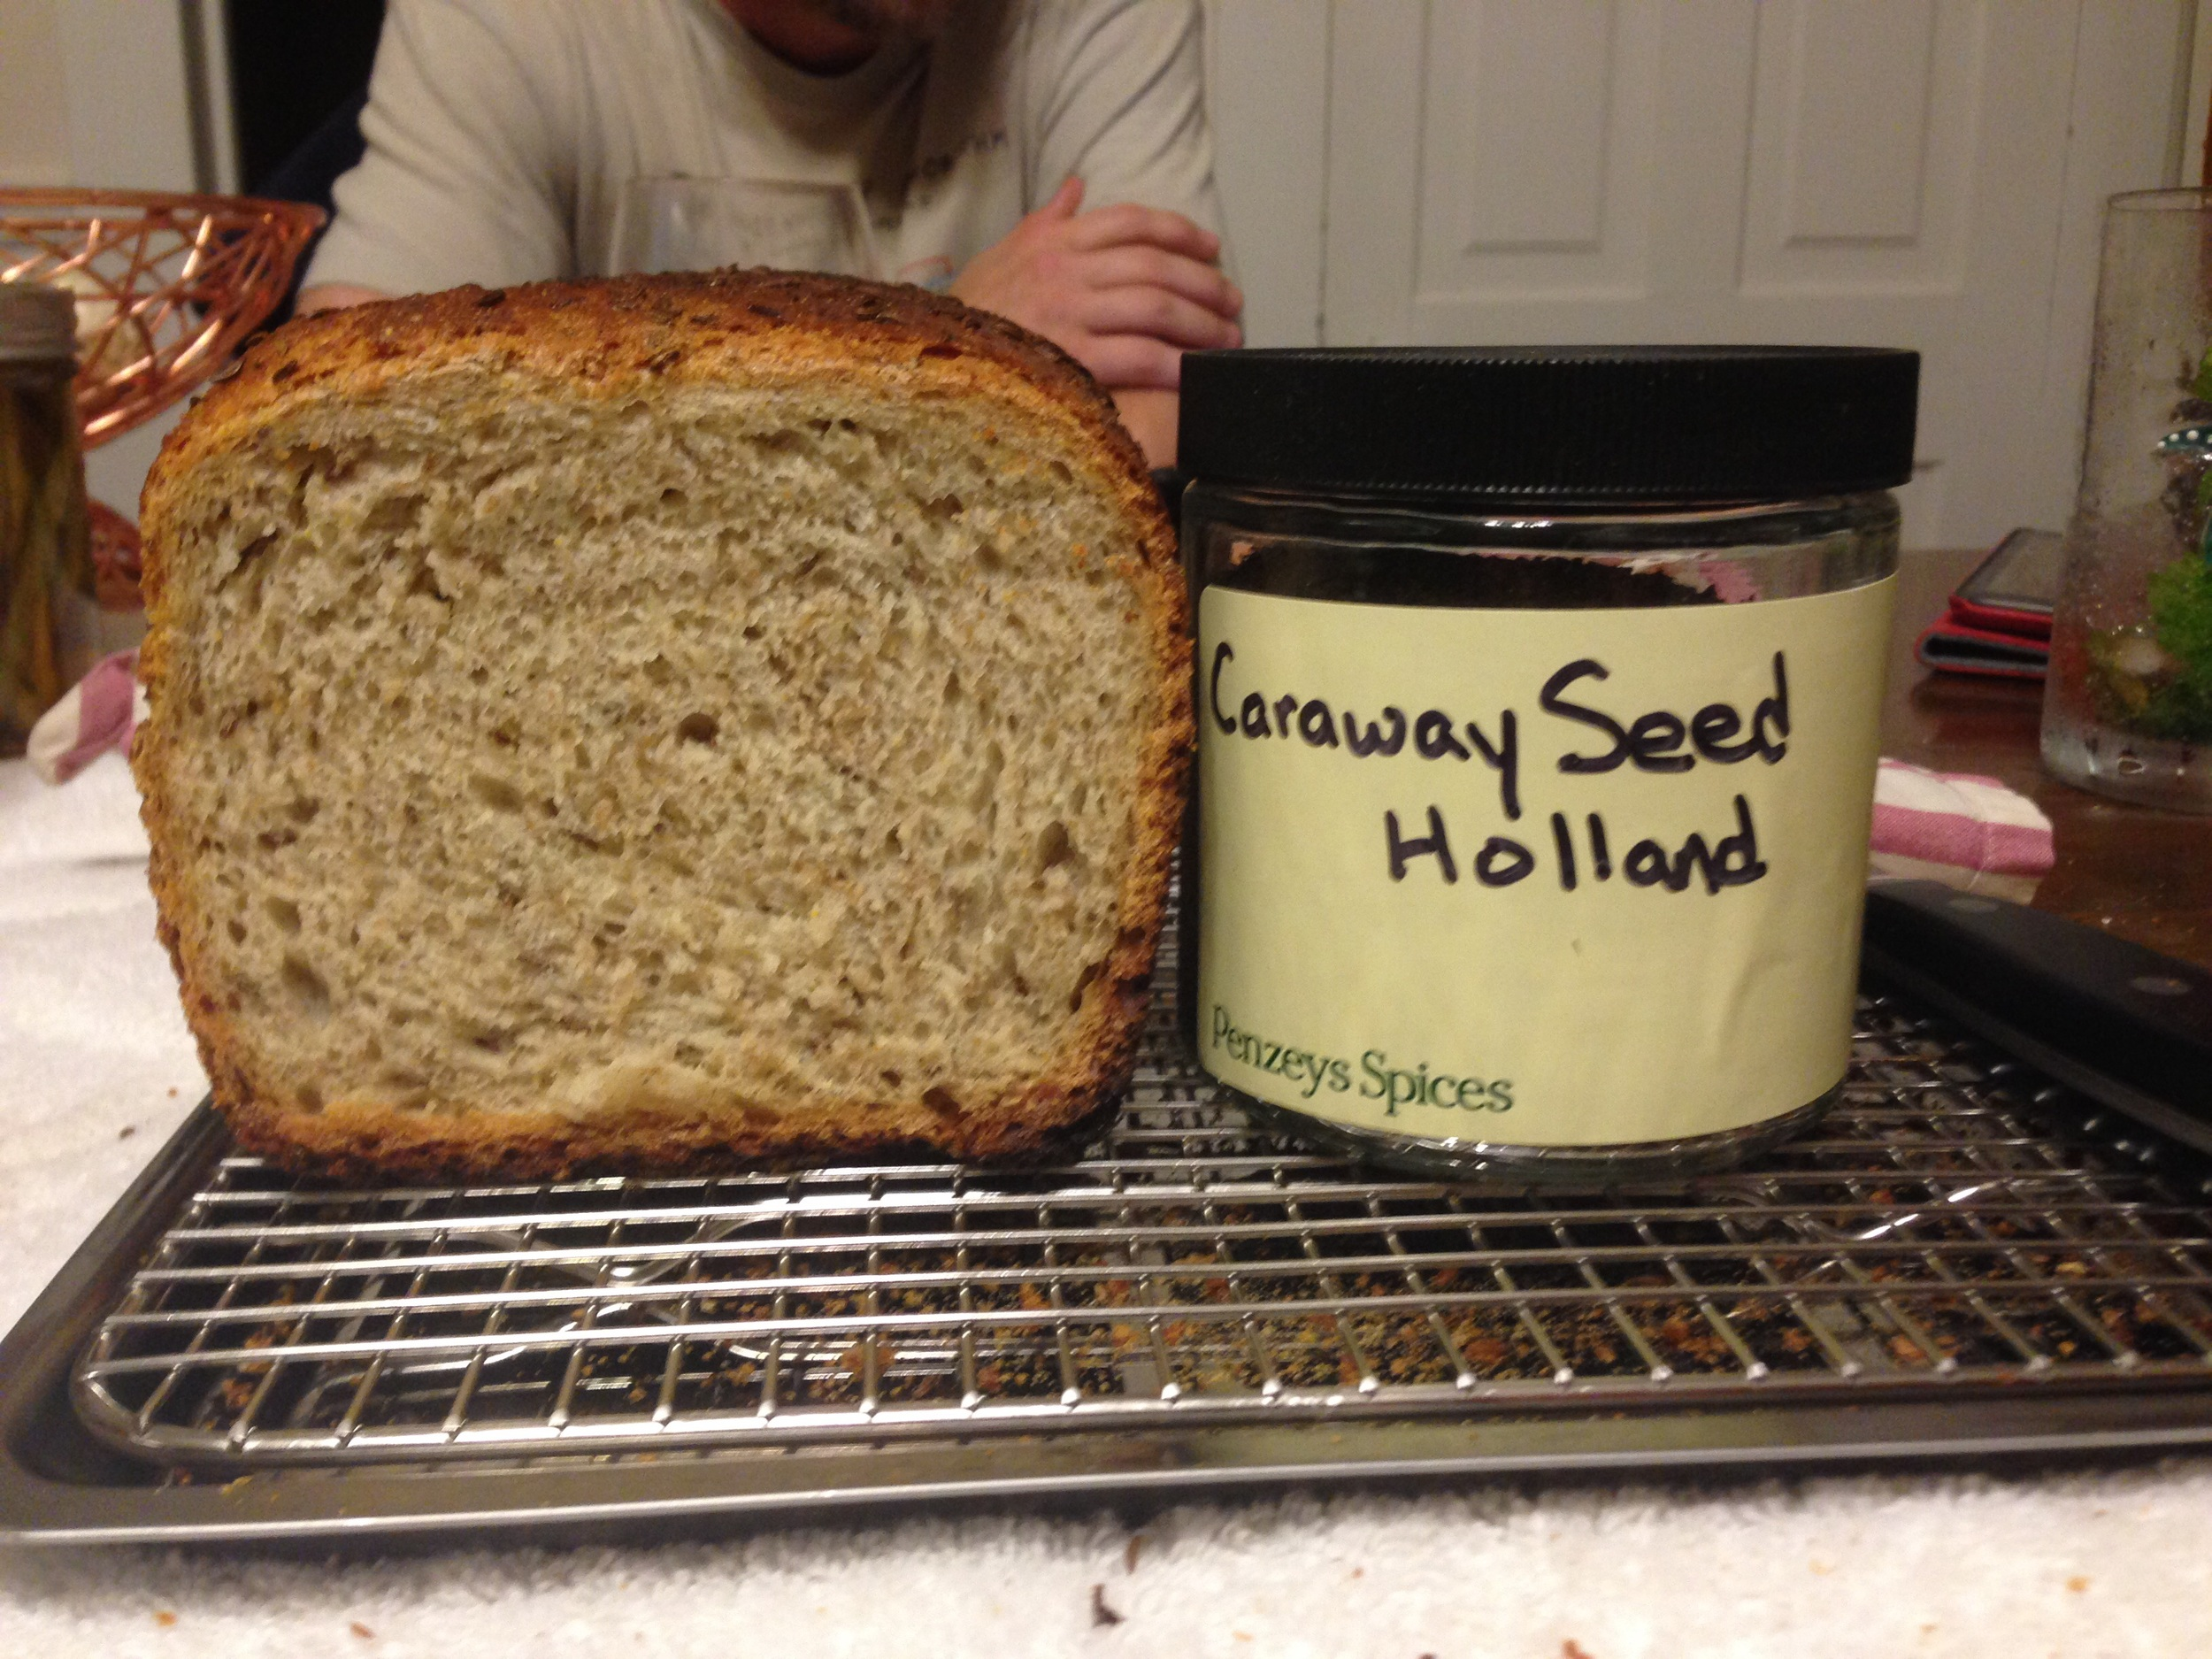 Aunt Jean & her daughter Jesse, shared their love of Penzeys spices. I have used their caraway seeds & lovely cinnamon to enhance my breads. Finding higher quality ingredients makes a better end product.